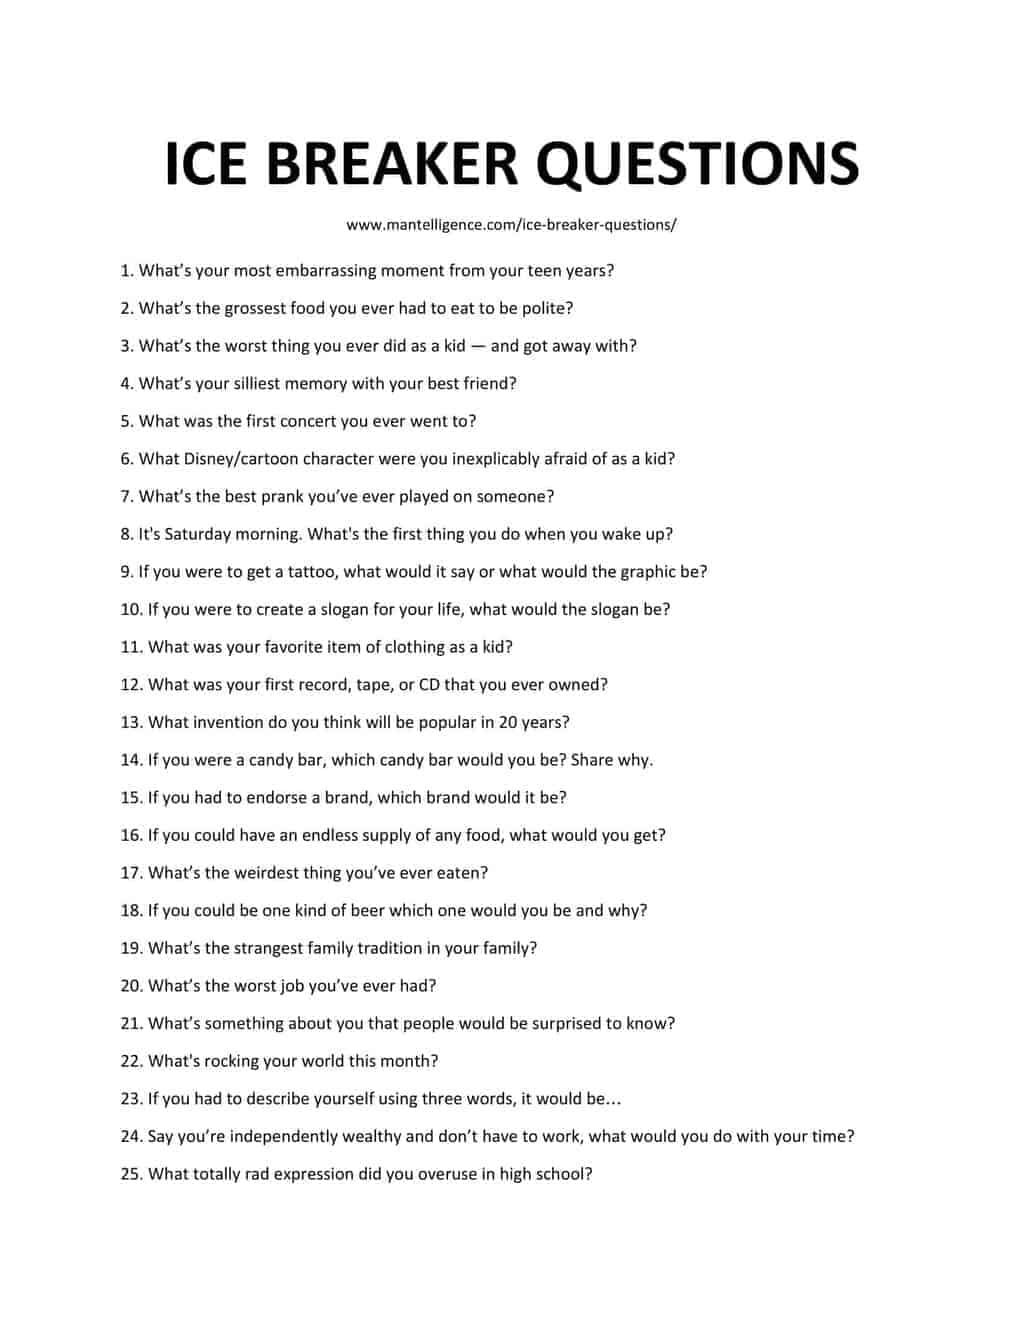 126 Best Ice Breaker Questions Quickly Spark Great